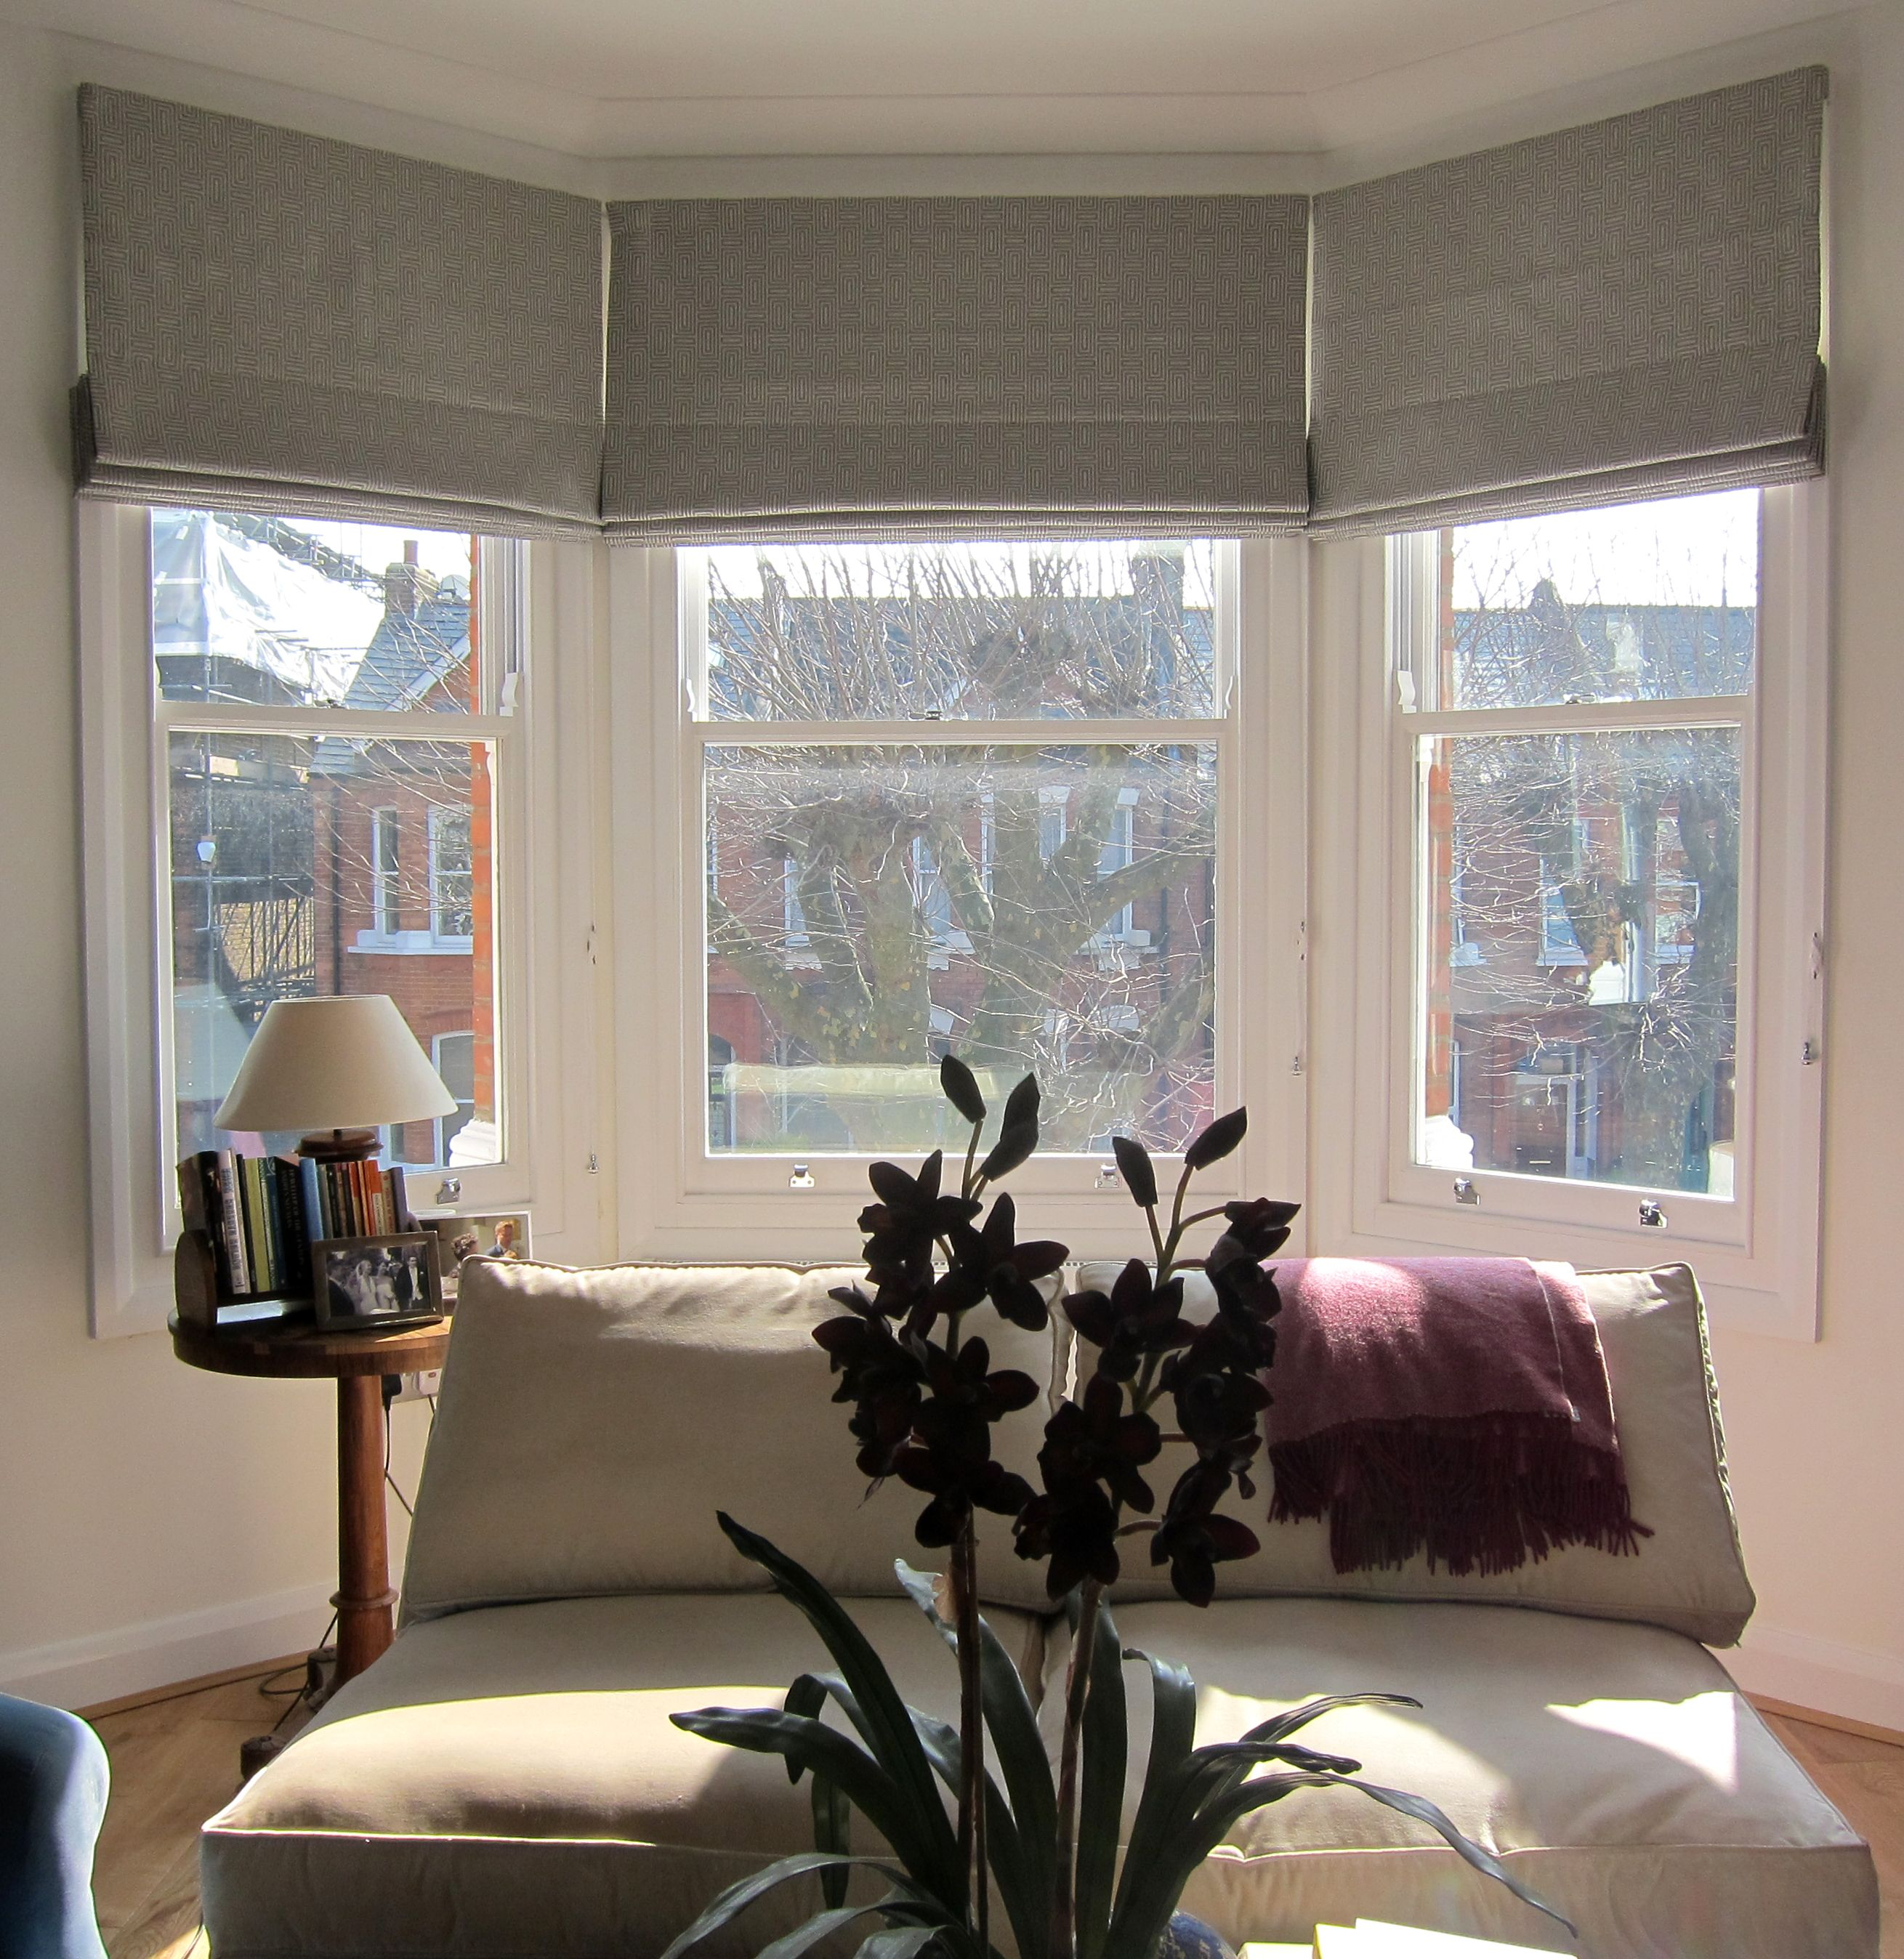 Geometric patterned roman blinds in a bay window could for Bedroom bay window treatments